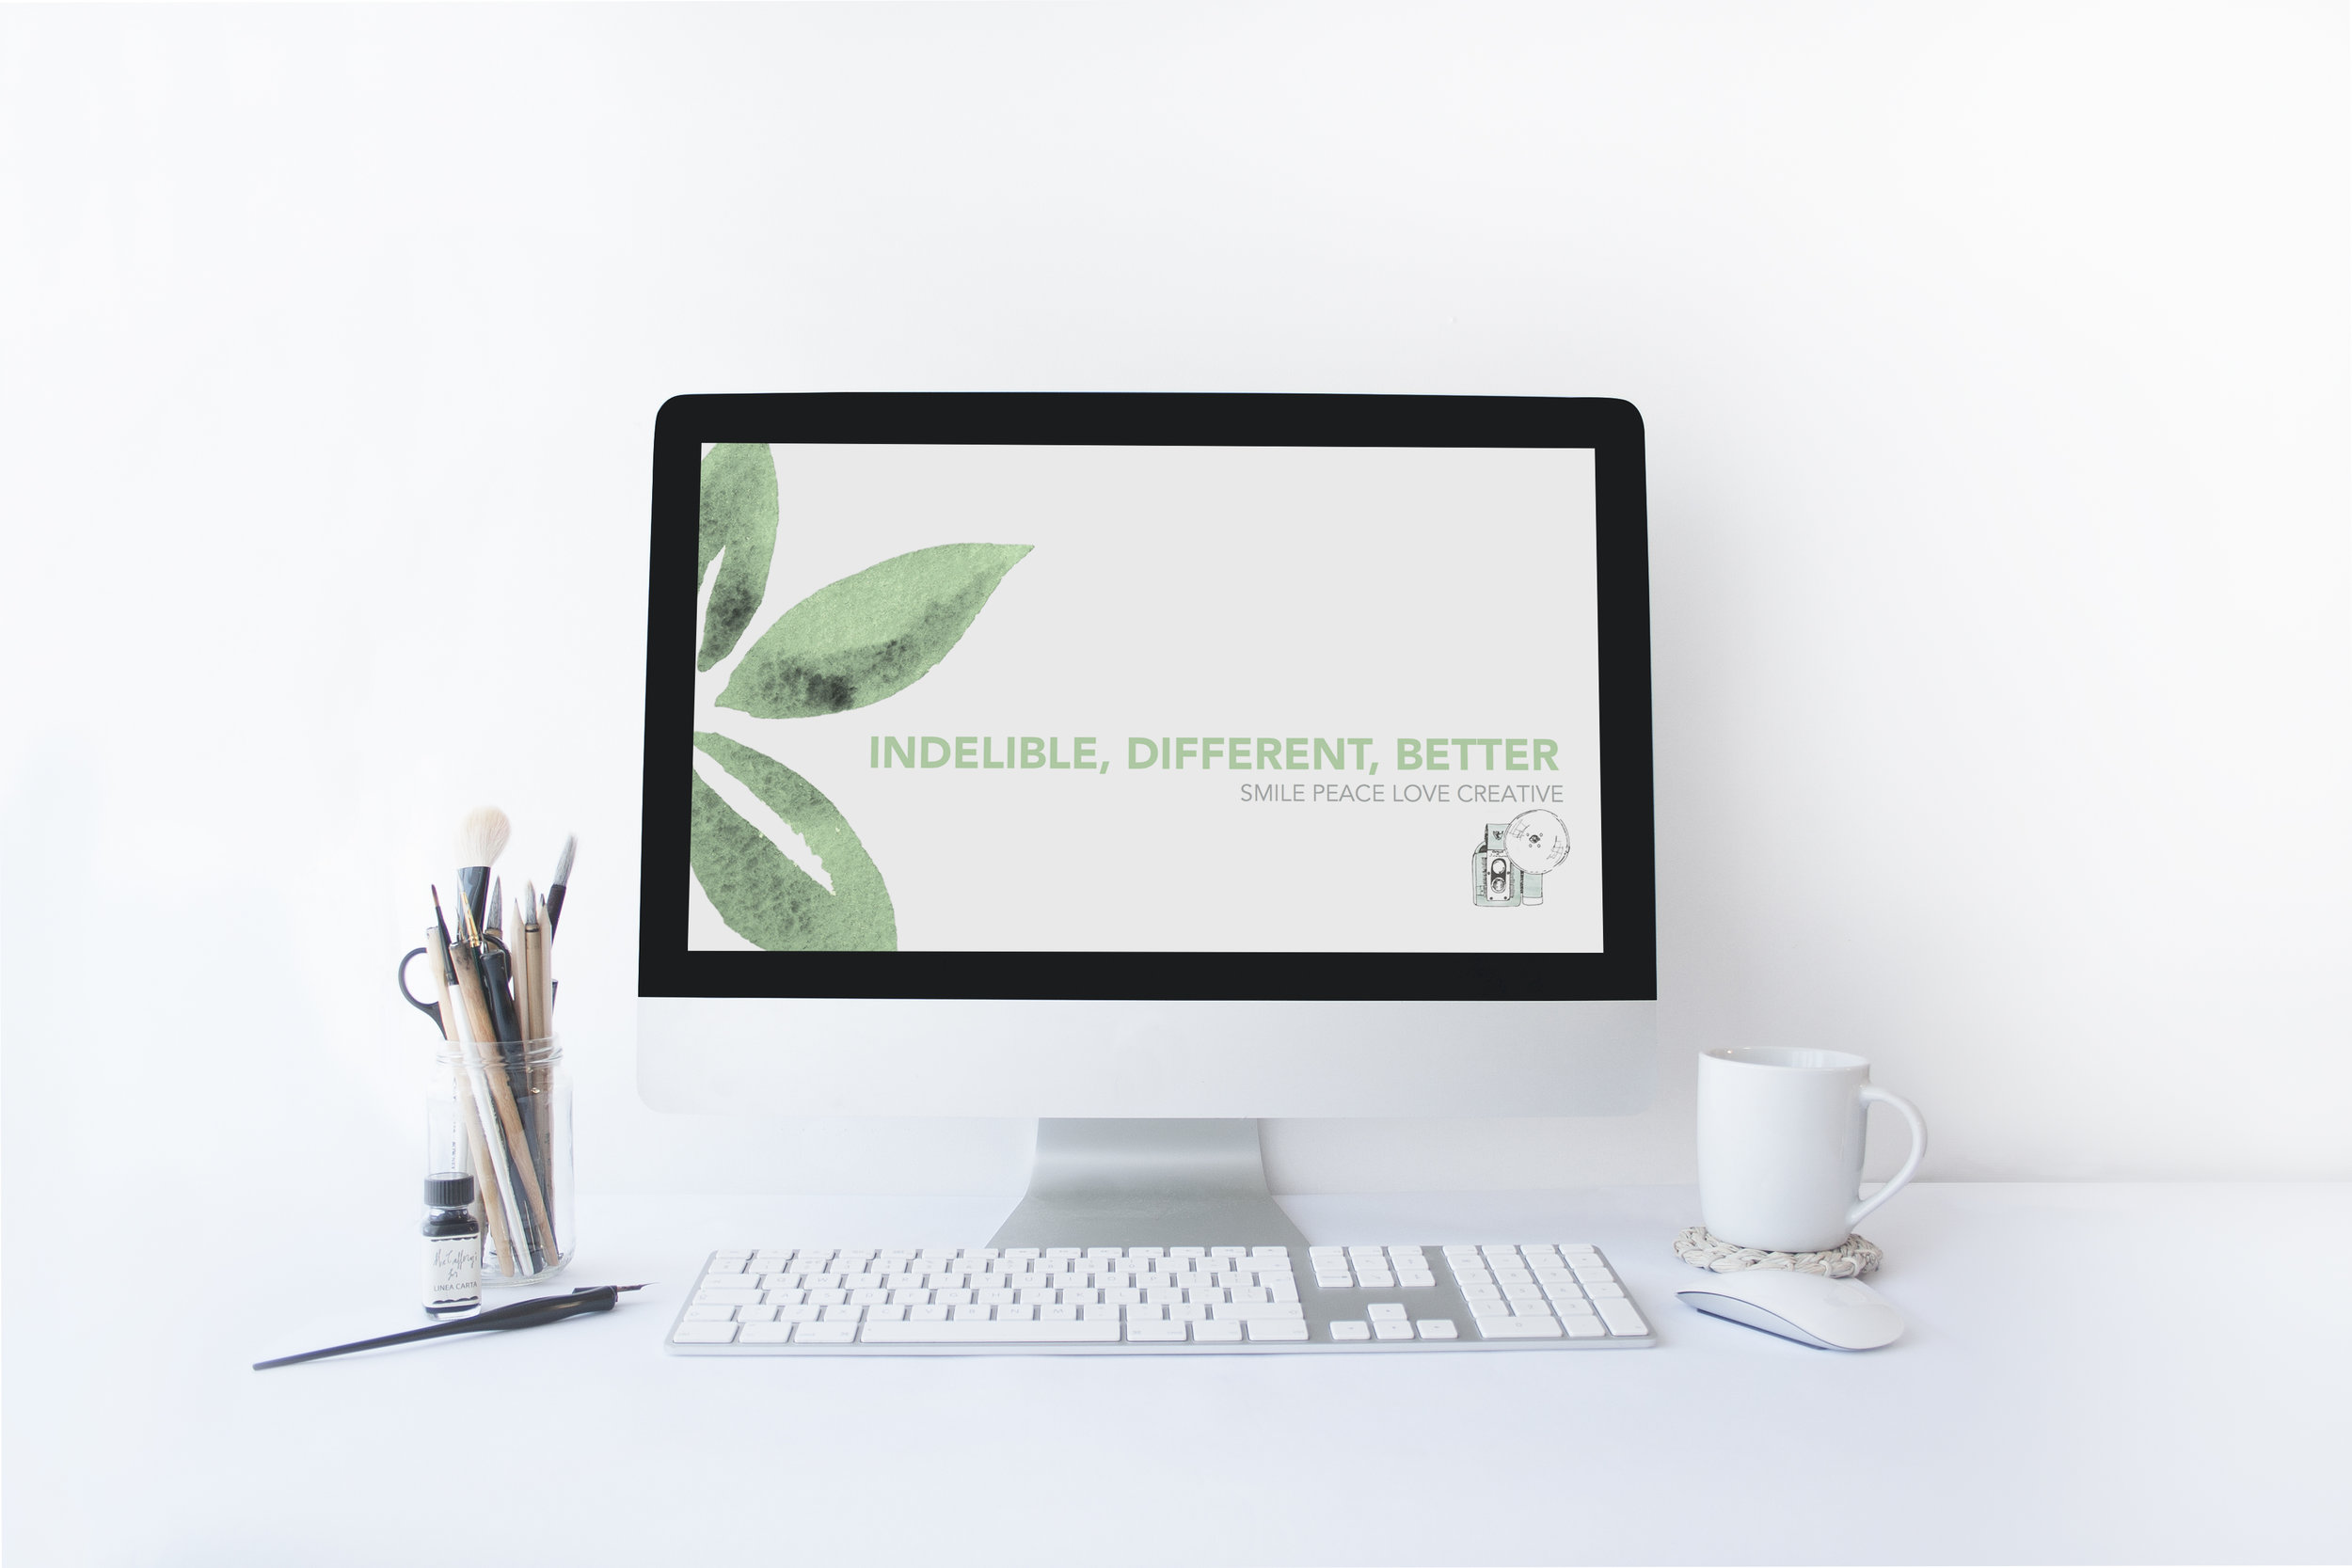 WEBINAR_03_MOCKUP_Indelible_Different_Better.jpg